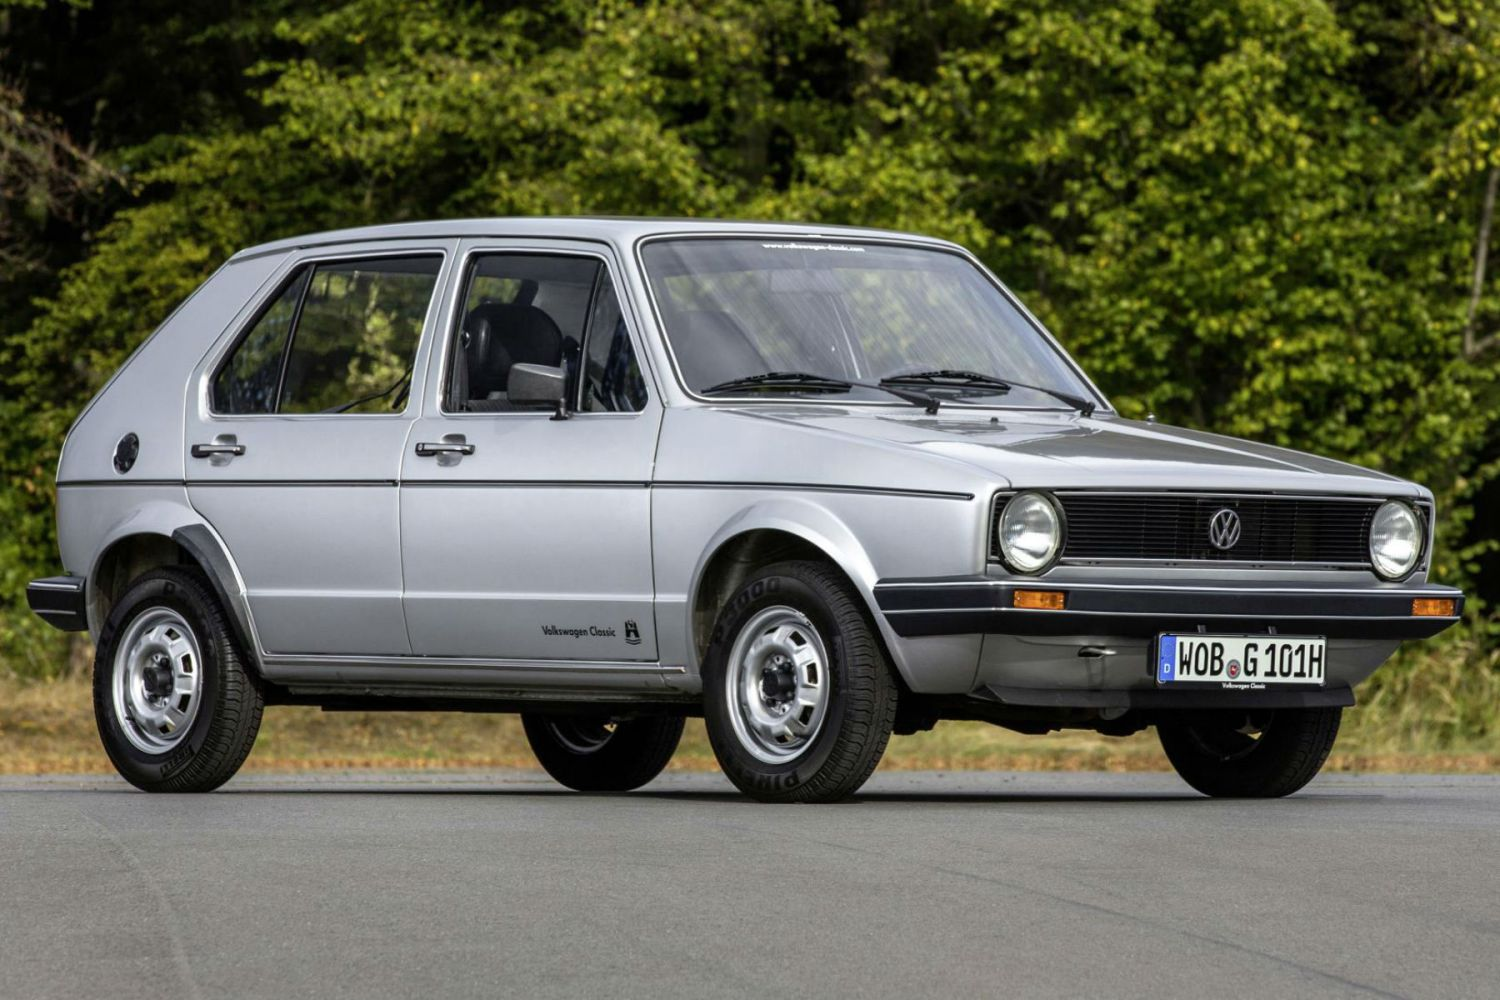 Golf Mk1 engines not compatible with new petrol